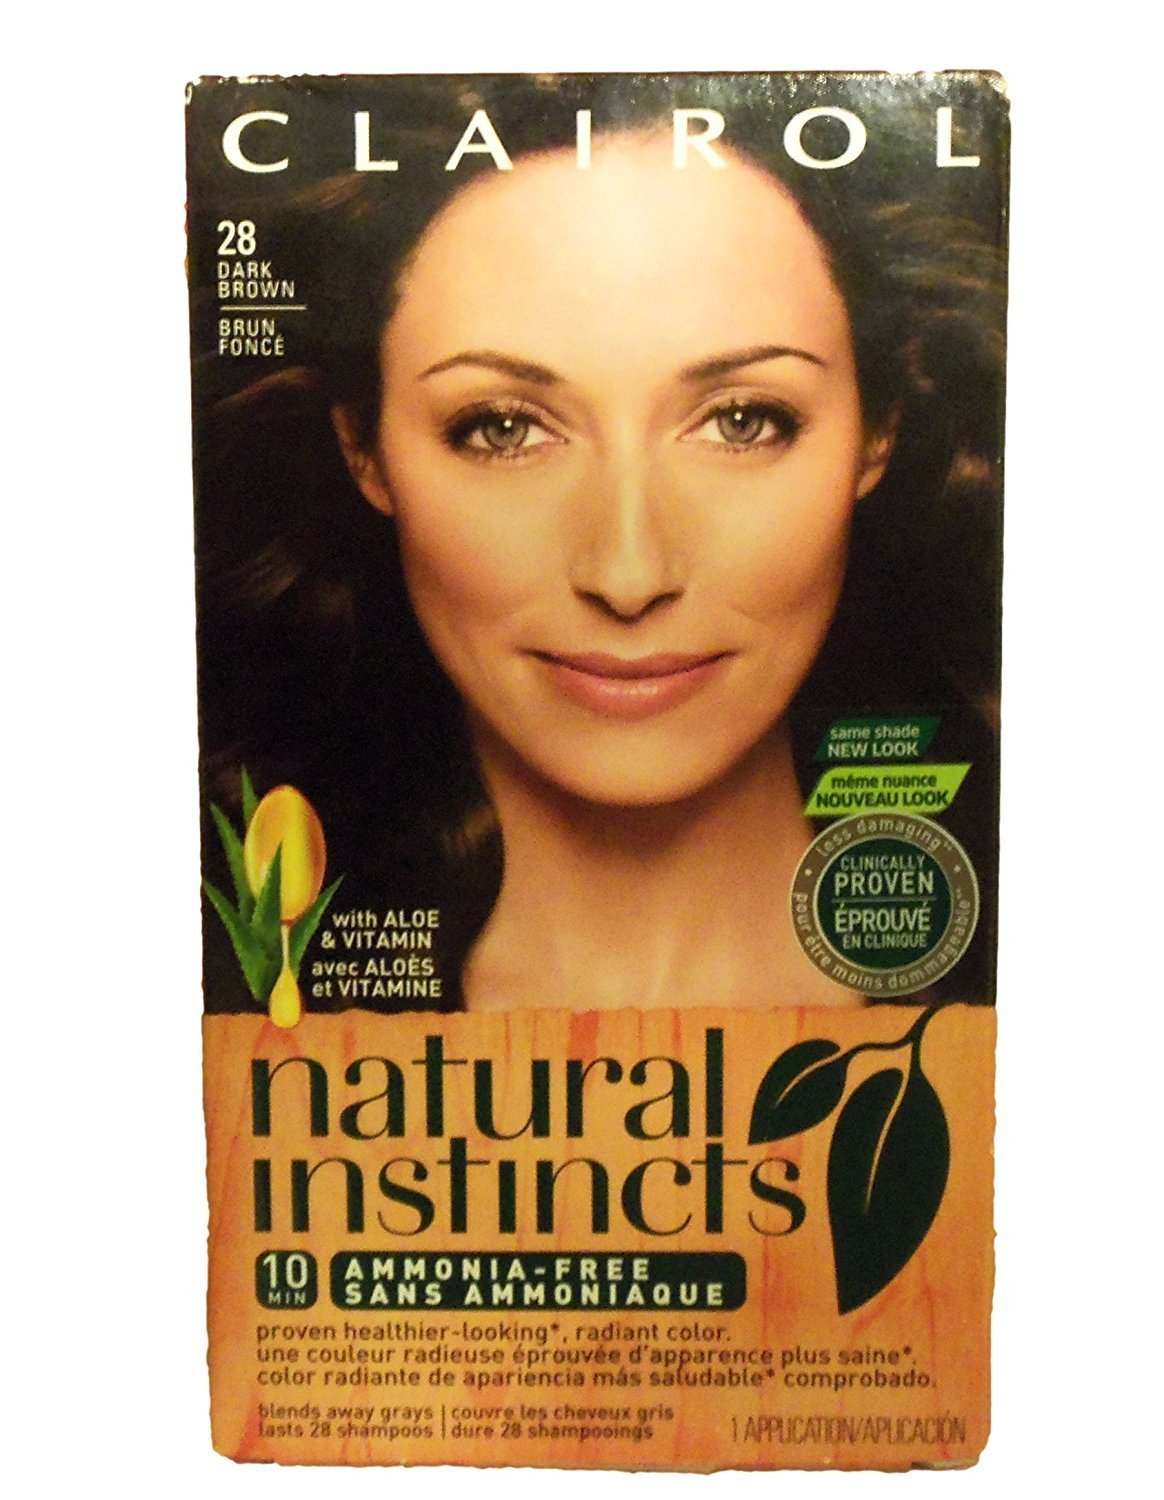 Cheap Clairol Natural Instincts Haircolor, #28 Nutmeg Dark Brown (Pack of 2) for sale